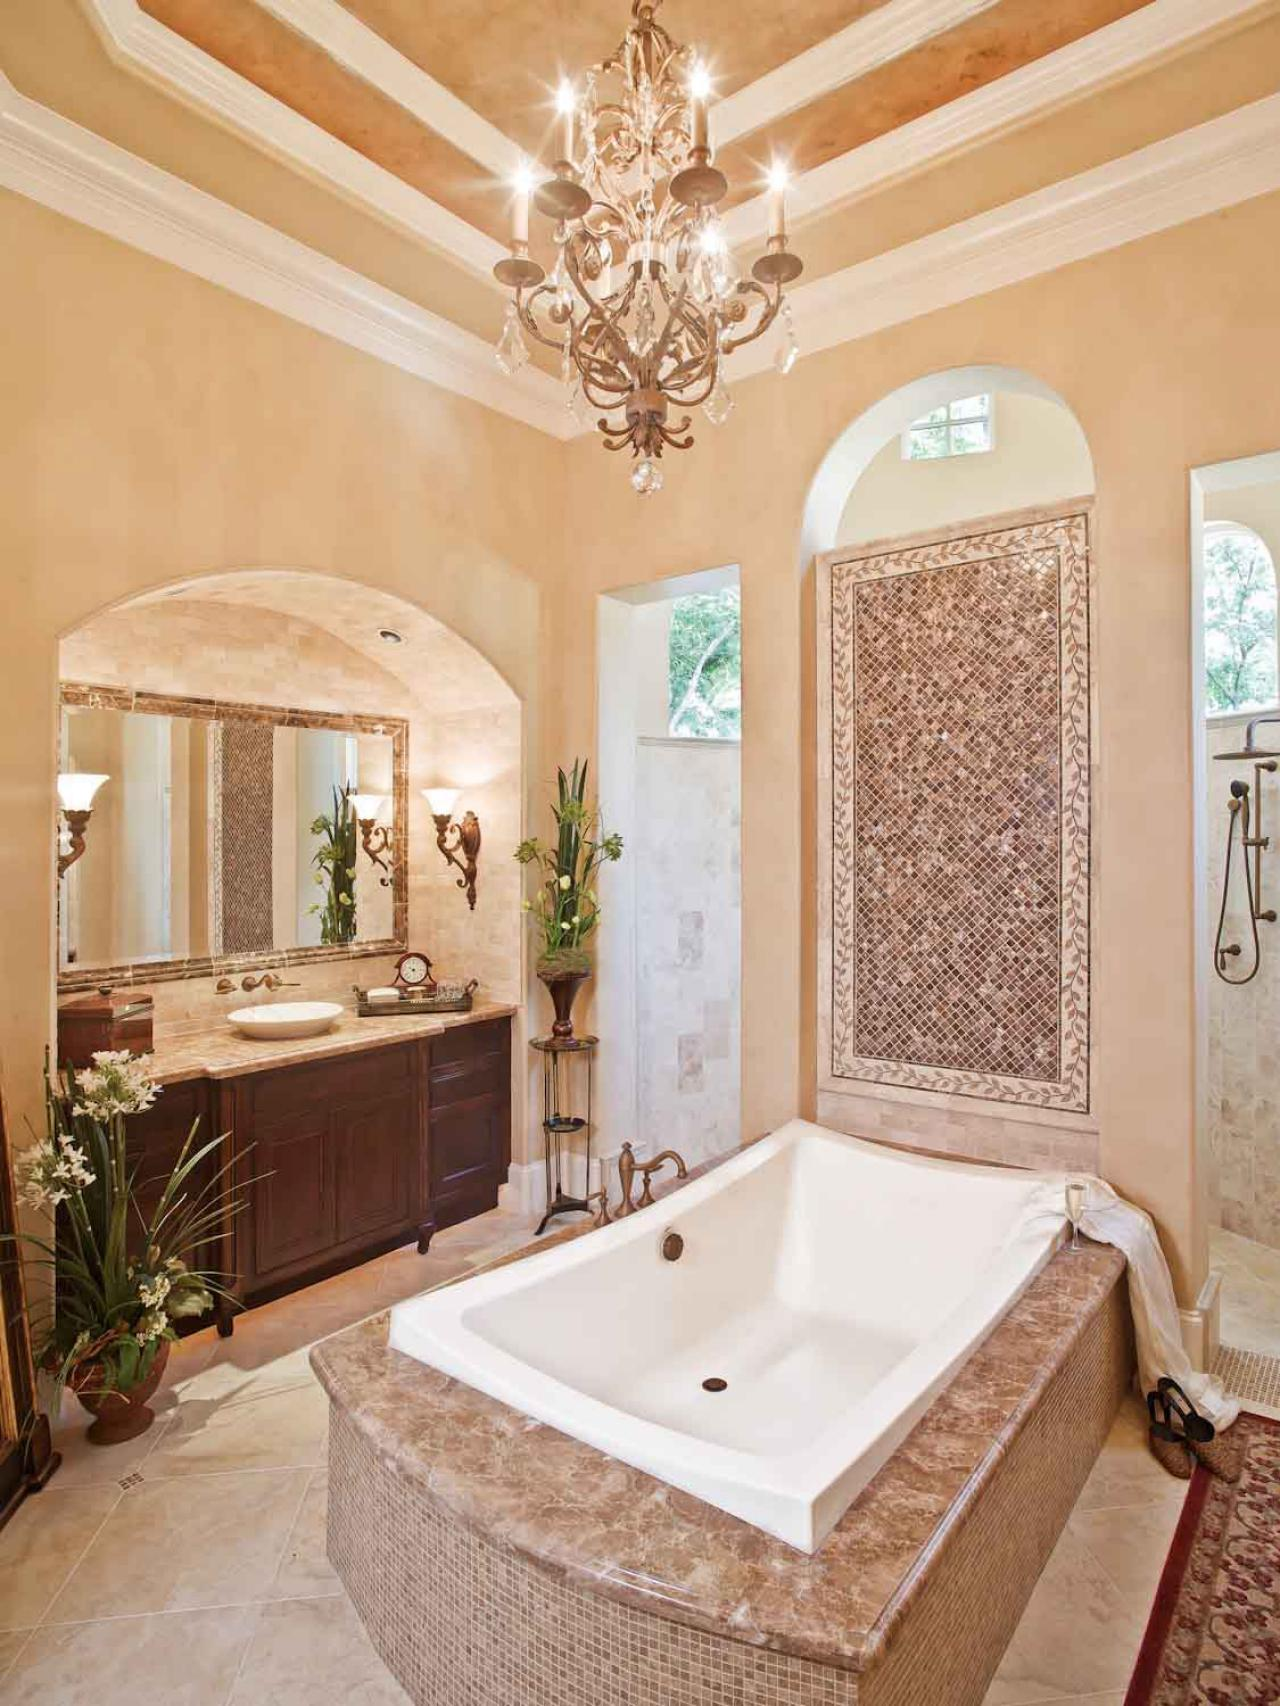 Luxurious Classic Bathroom Vanity Lighting 20 Luxurious Bathrooms With Elegant Chandelier Lighting